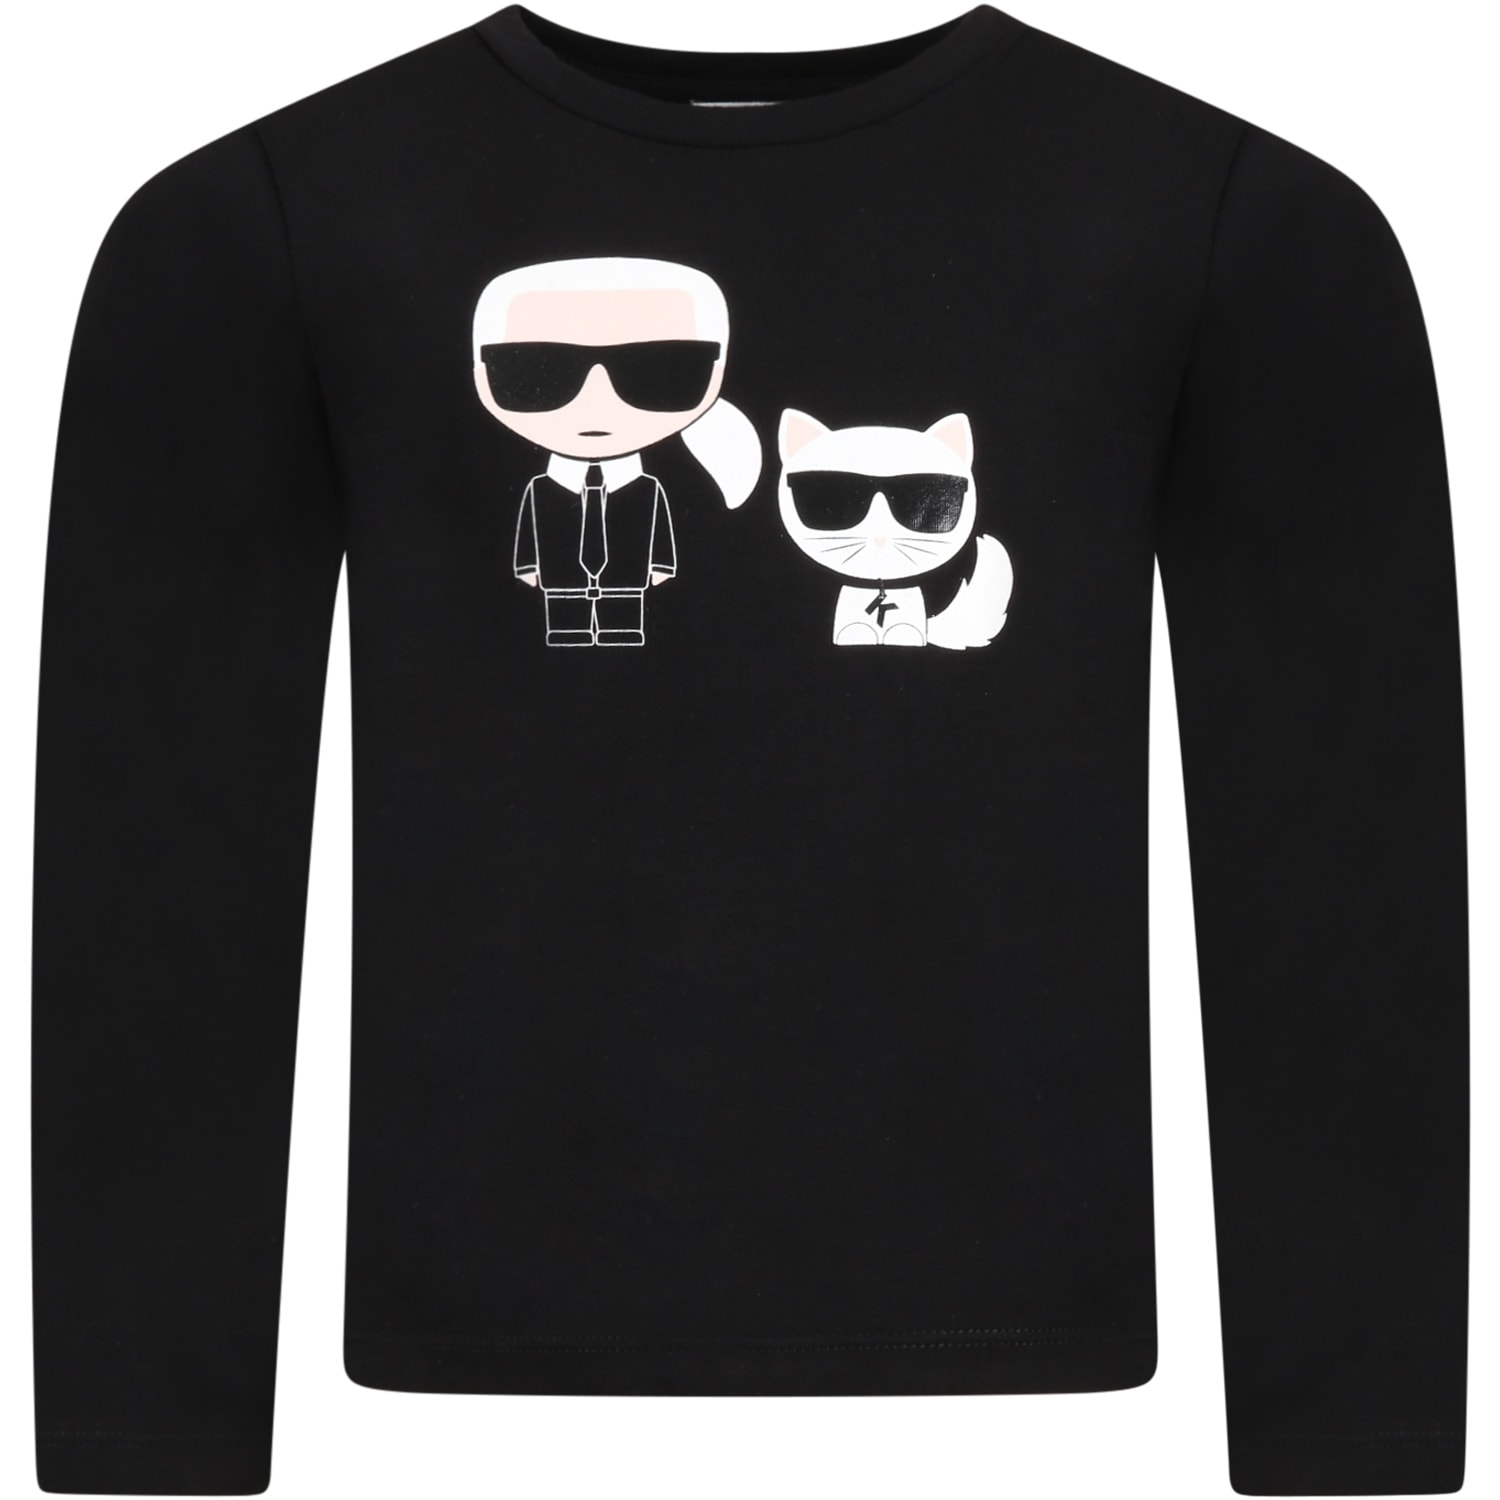 Black T-shirt For Kids With Karl Lagerfeld And Choupette